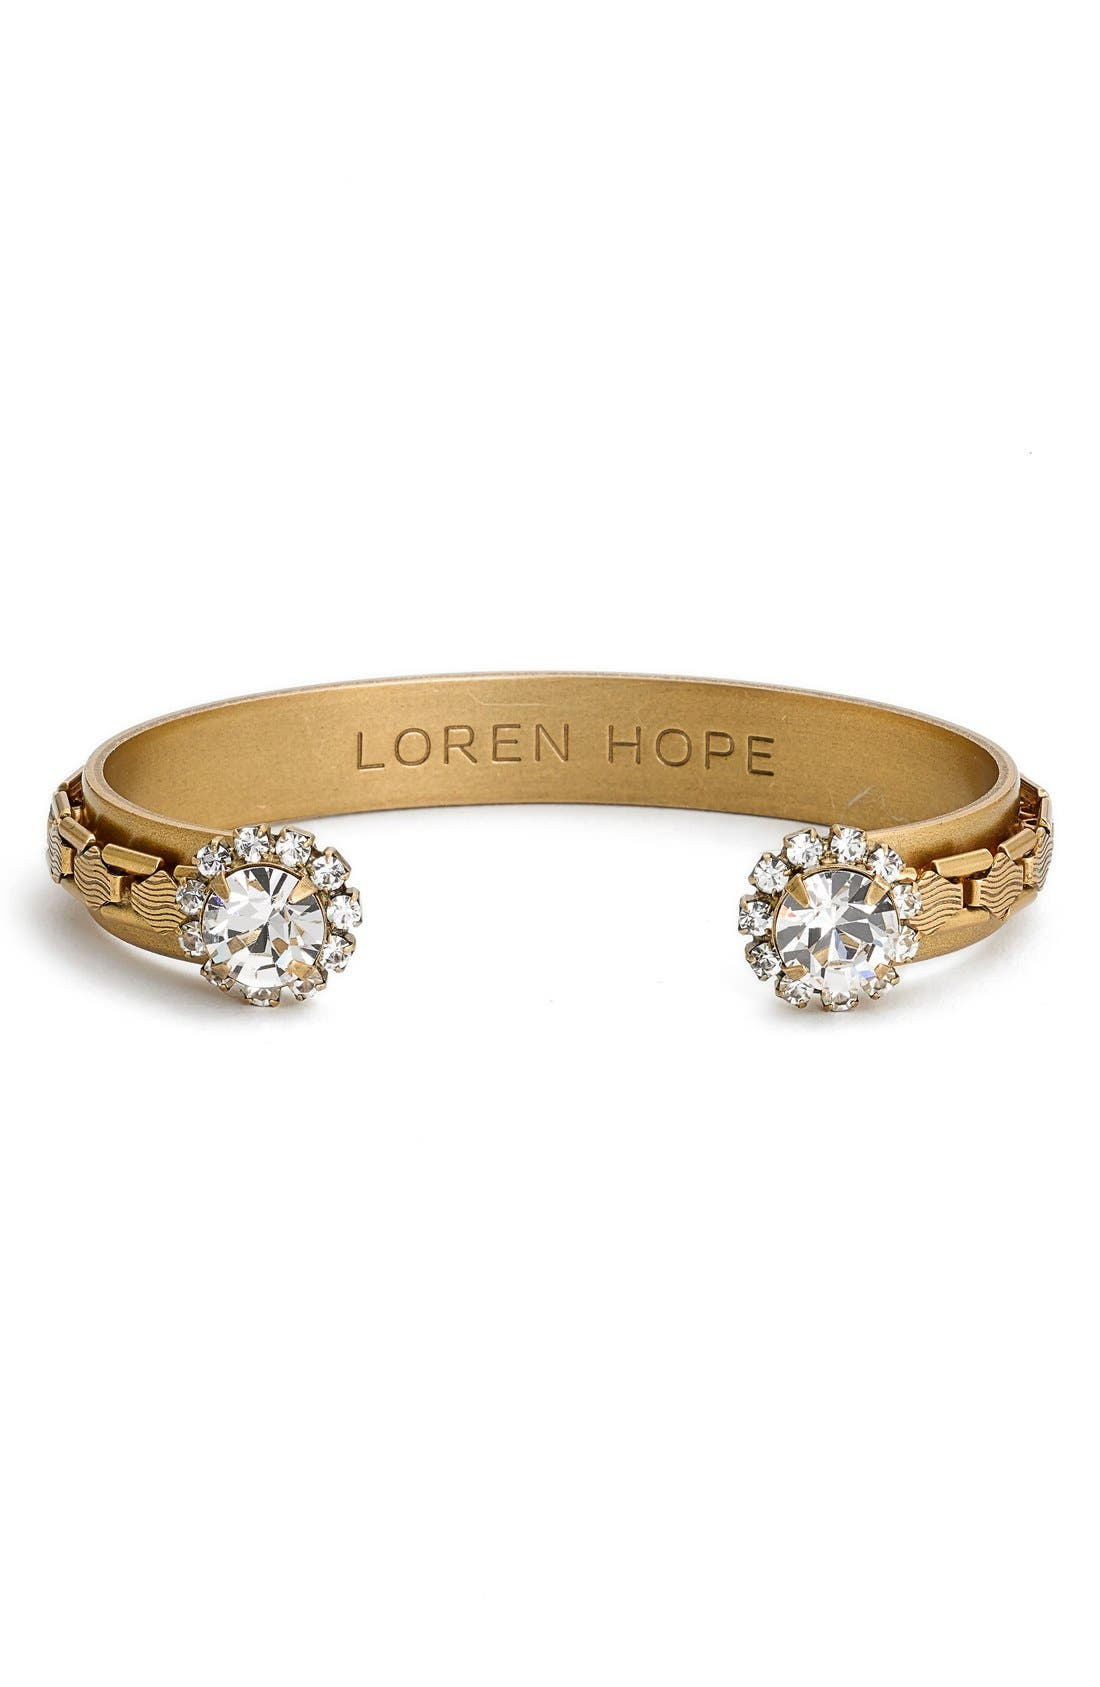 Loren Hope 'Marley' Crystal Cuff